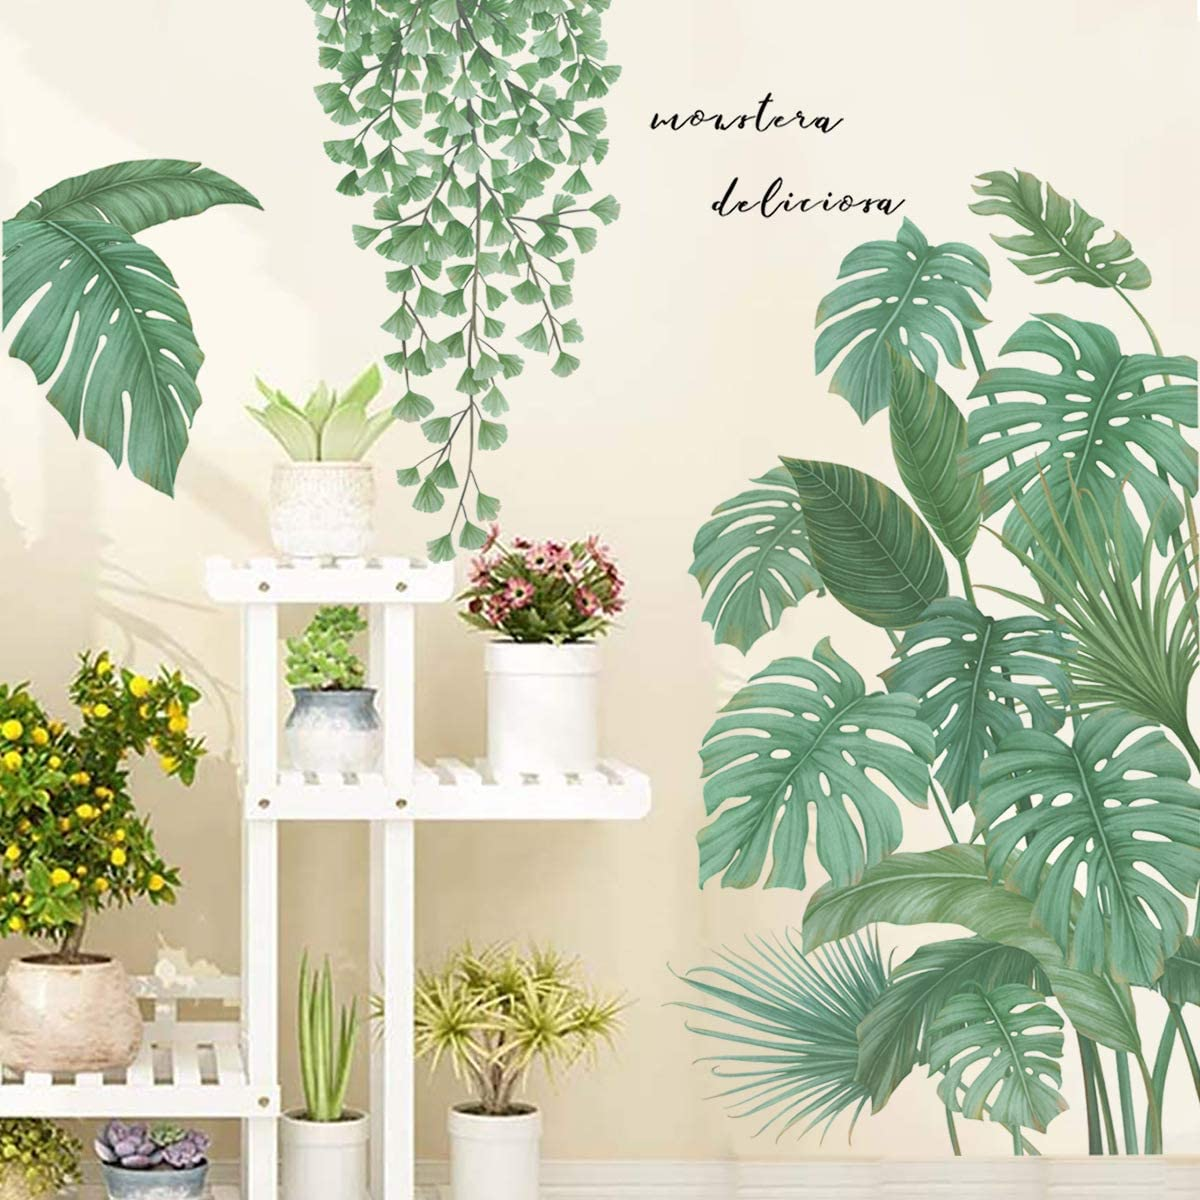 Monstera Leaf Tropical Plants Peel and Stick Wallpaper, Green Ginkgo & Palm Tree Leaves Wall Stickers Decals, DIY Wall Art Decor Home Decorations for Living Room Bedroom, 31.5 x 40inch